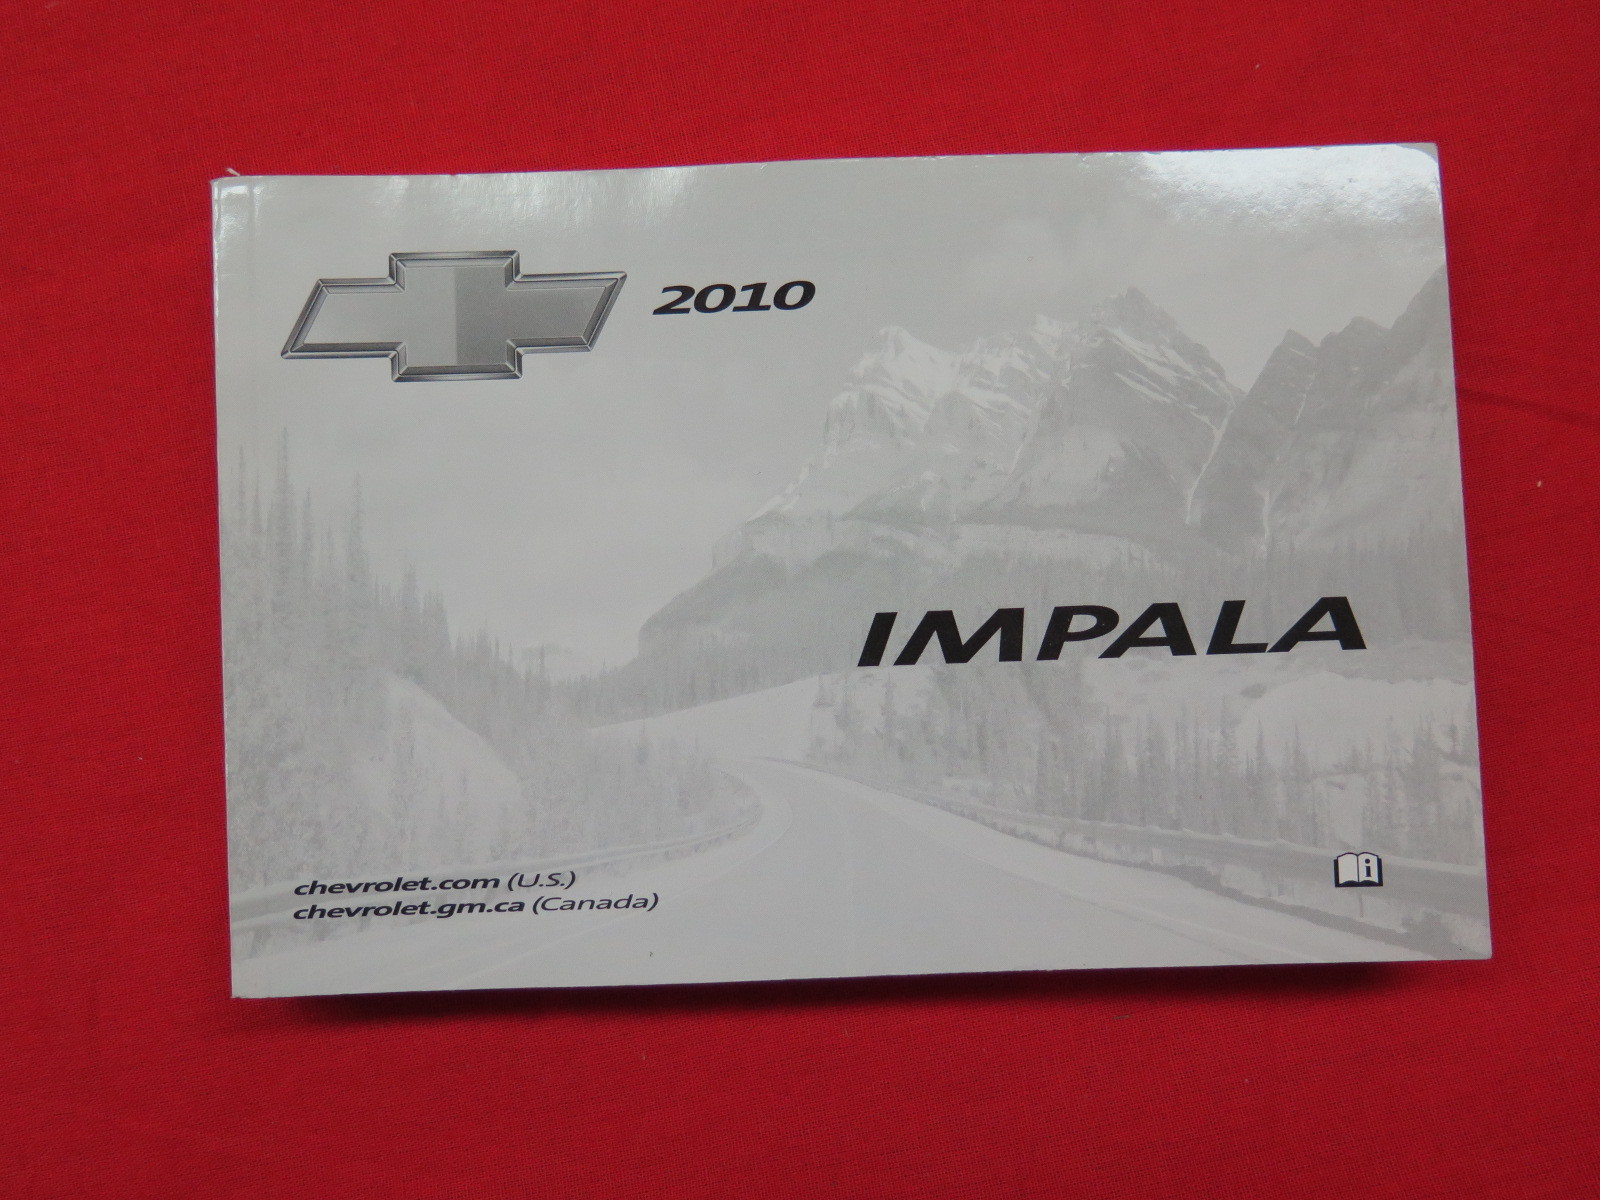 2010 chevy chevrolet impala owners manual guide book